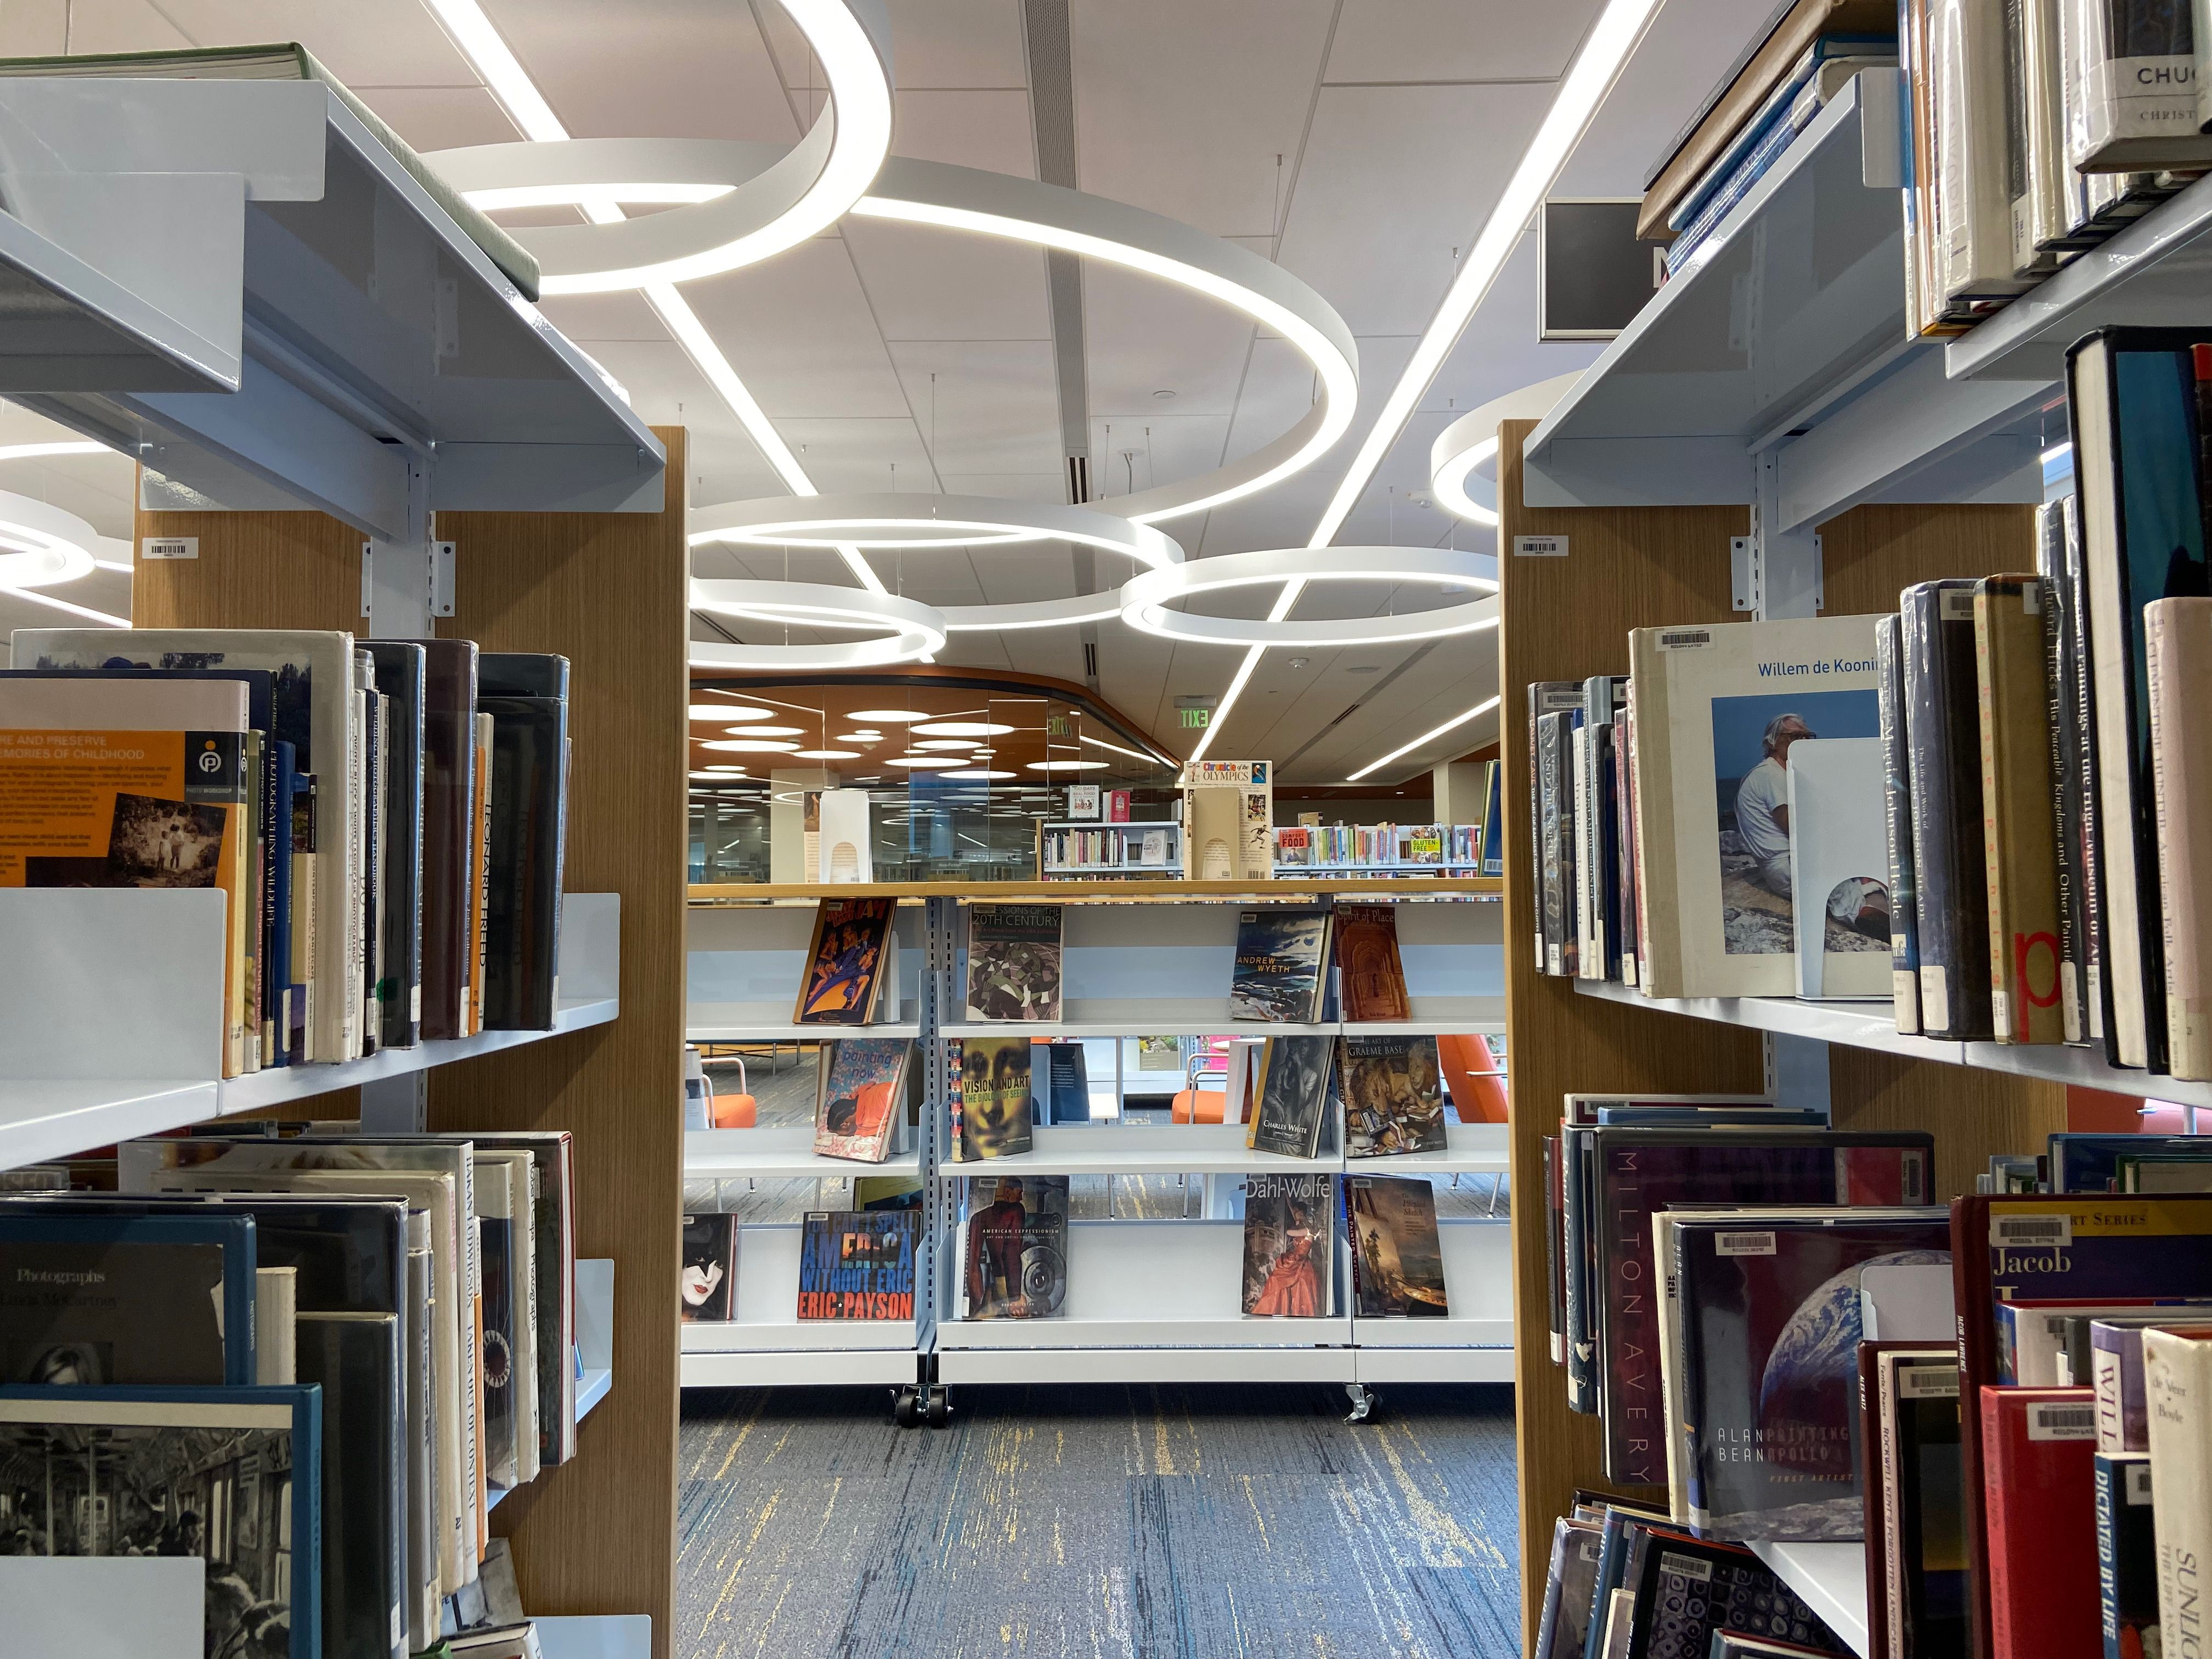 A perspective from between the aisles of books, looking out to a room with circular lighting fixtures overhead